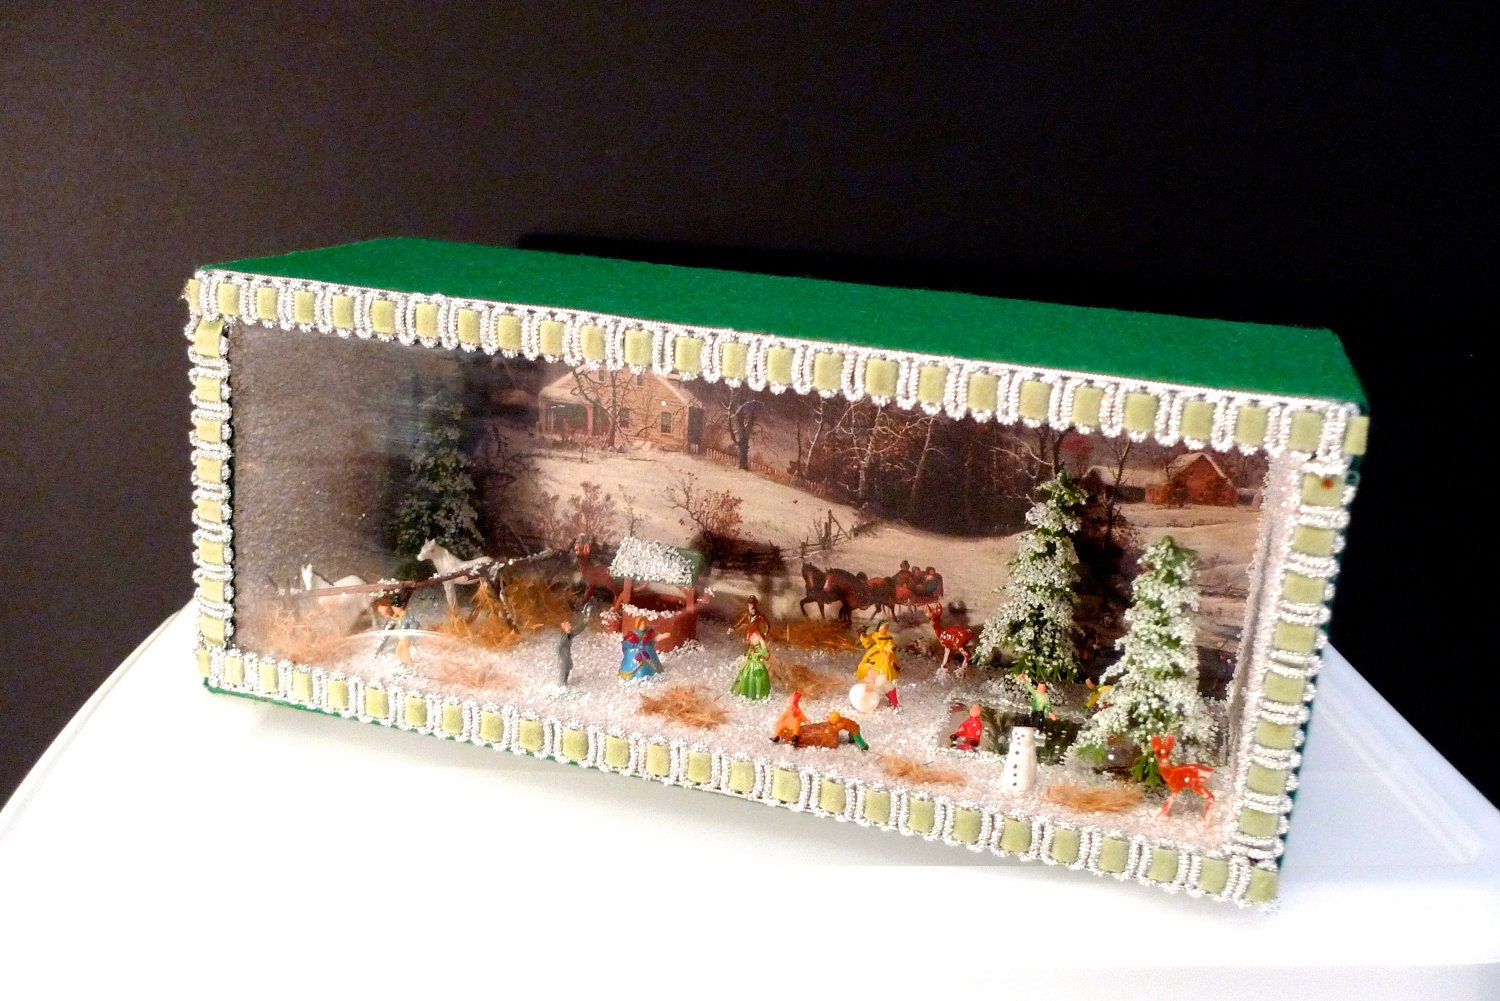 Miniature Children S Bedroom Room Box Diorama: Christmas Diorama Winter Shadow Box Americana OOAK Handmade